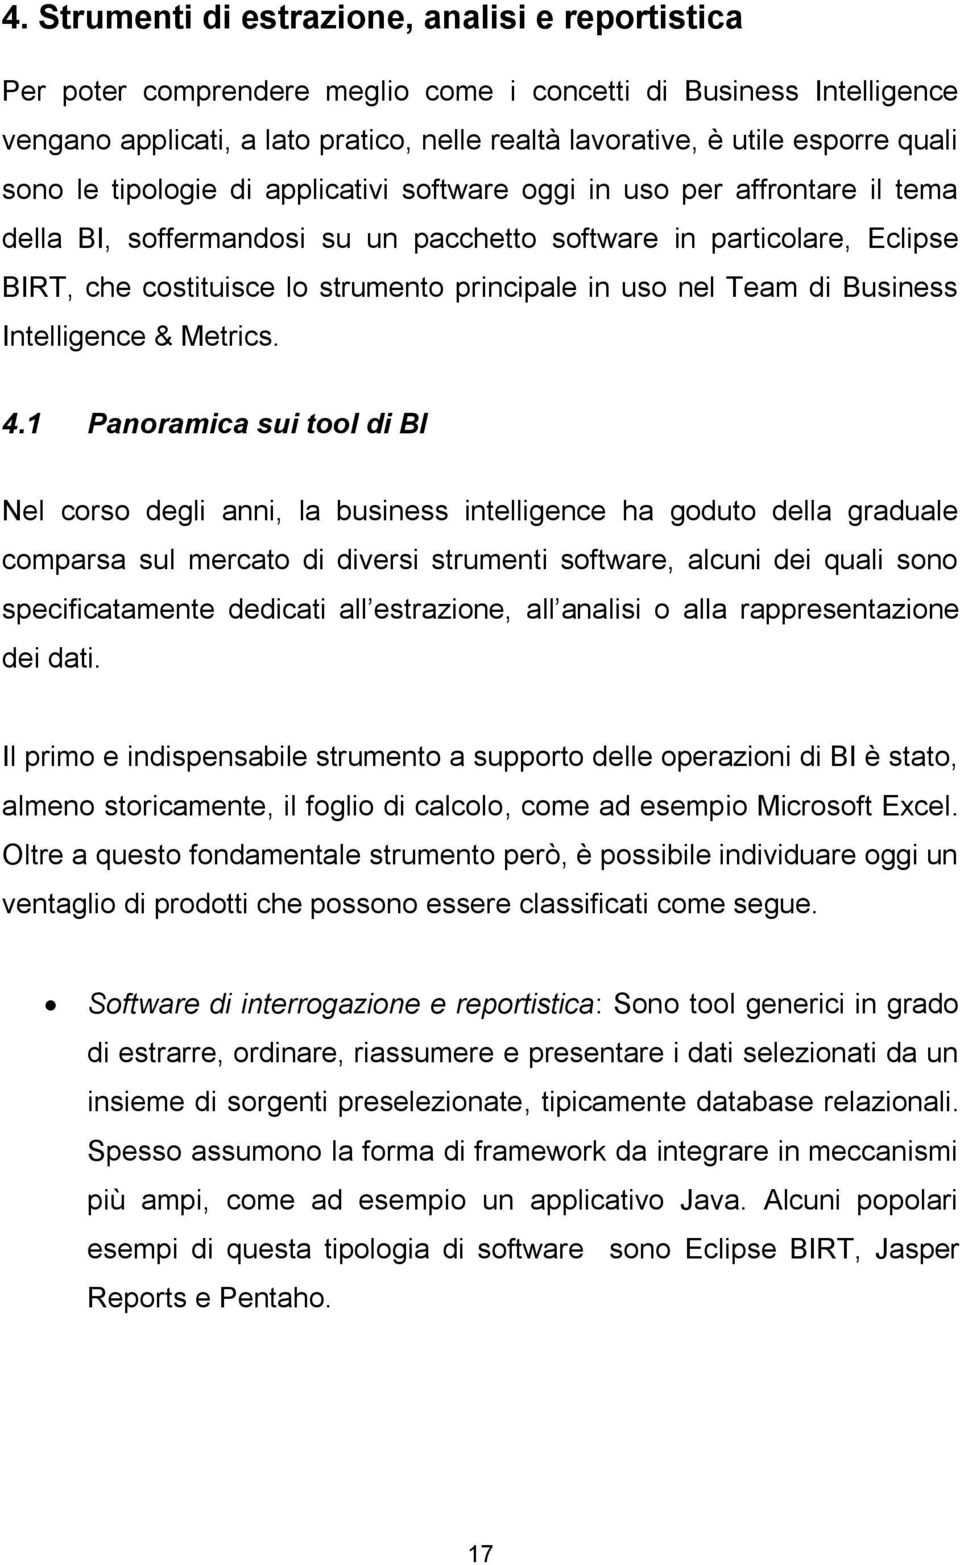 principale in uso nel Team di Business Intelligence & Metrics. 4.